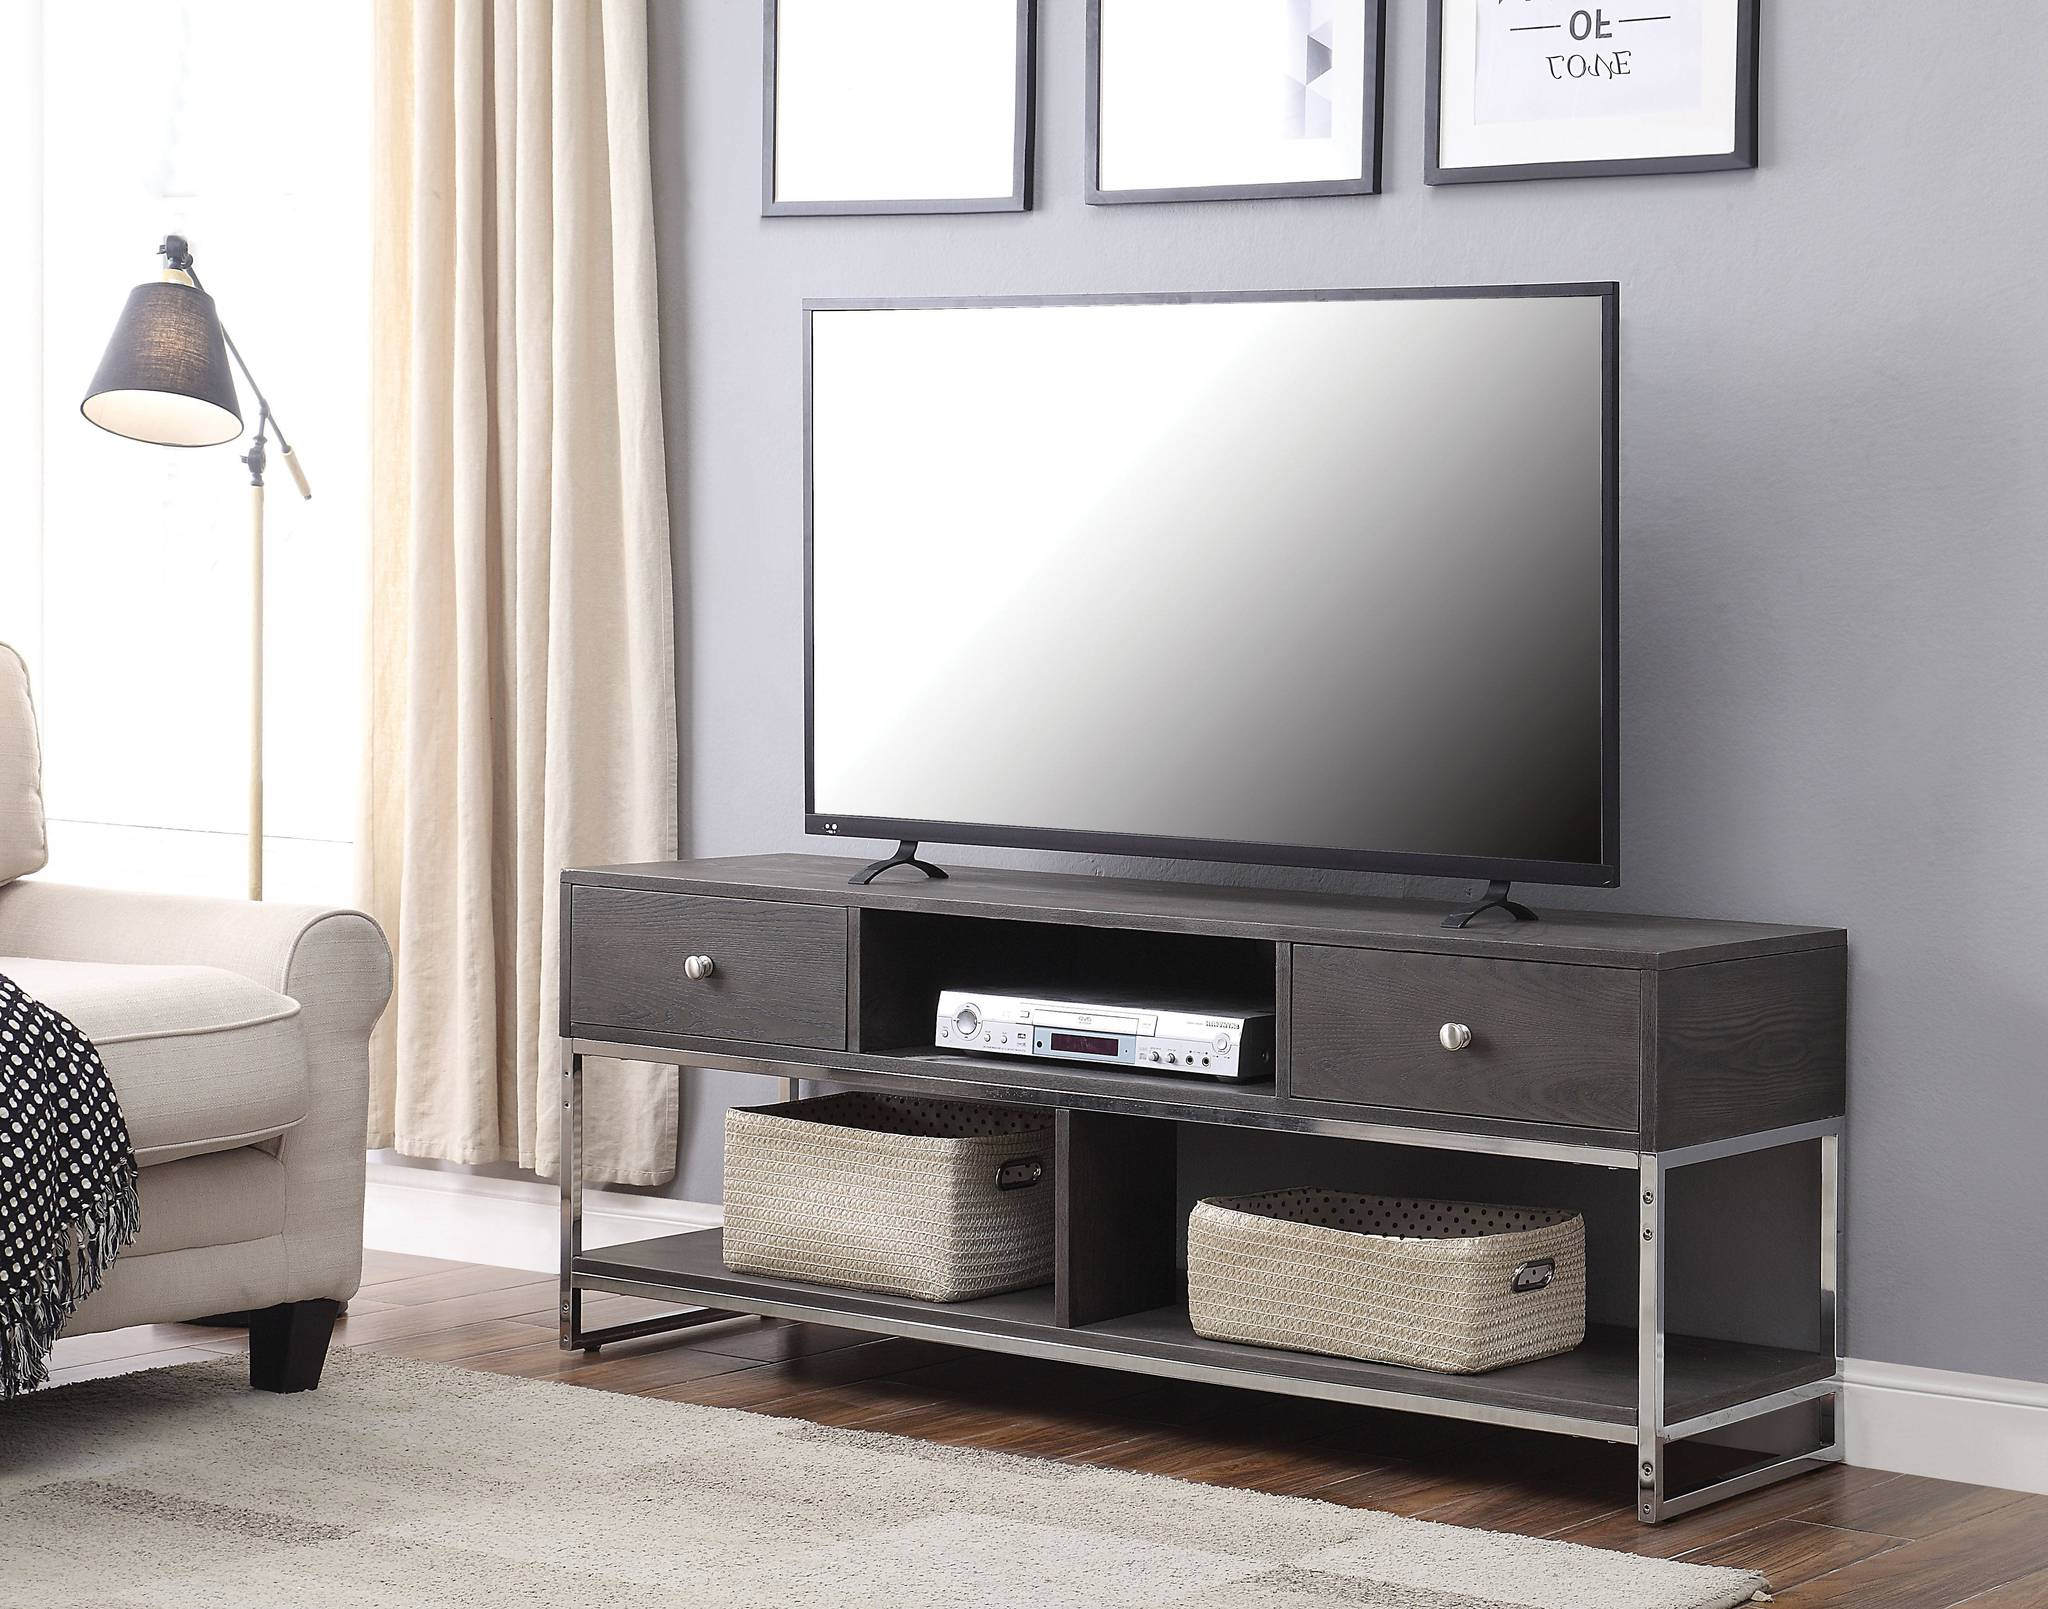 91204 Iban Gray Wood Metal Finish Modern Tv Stand Within Modern Black Tv Stands On Wheels With Metal Cart (View 1 of 20)